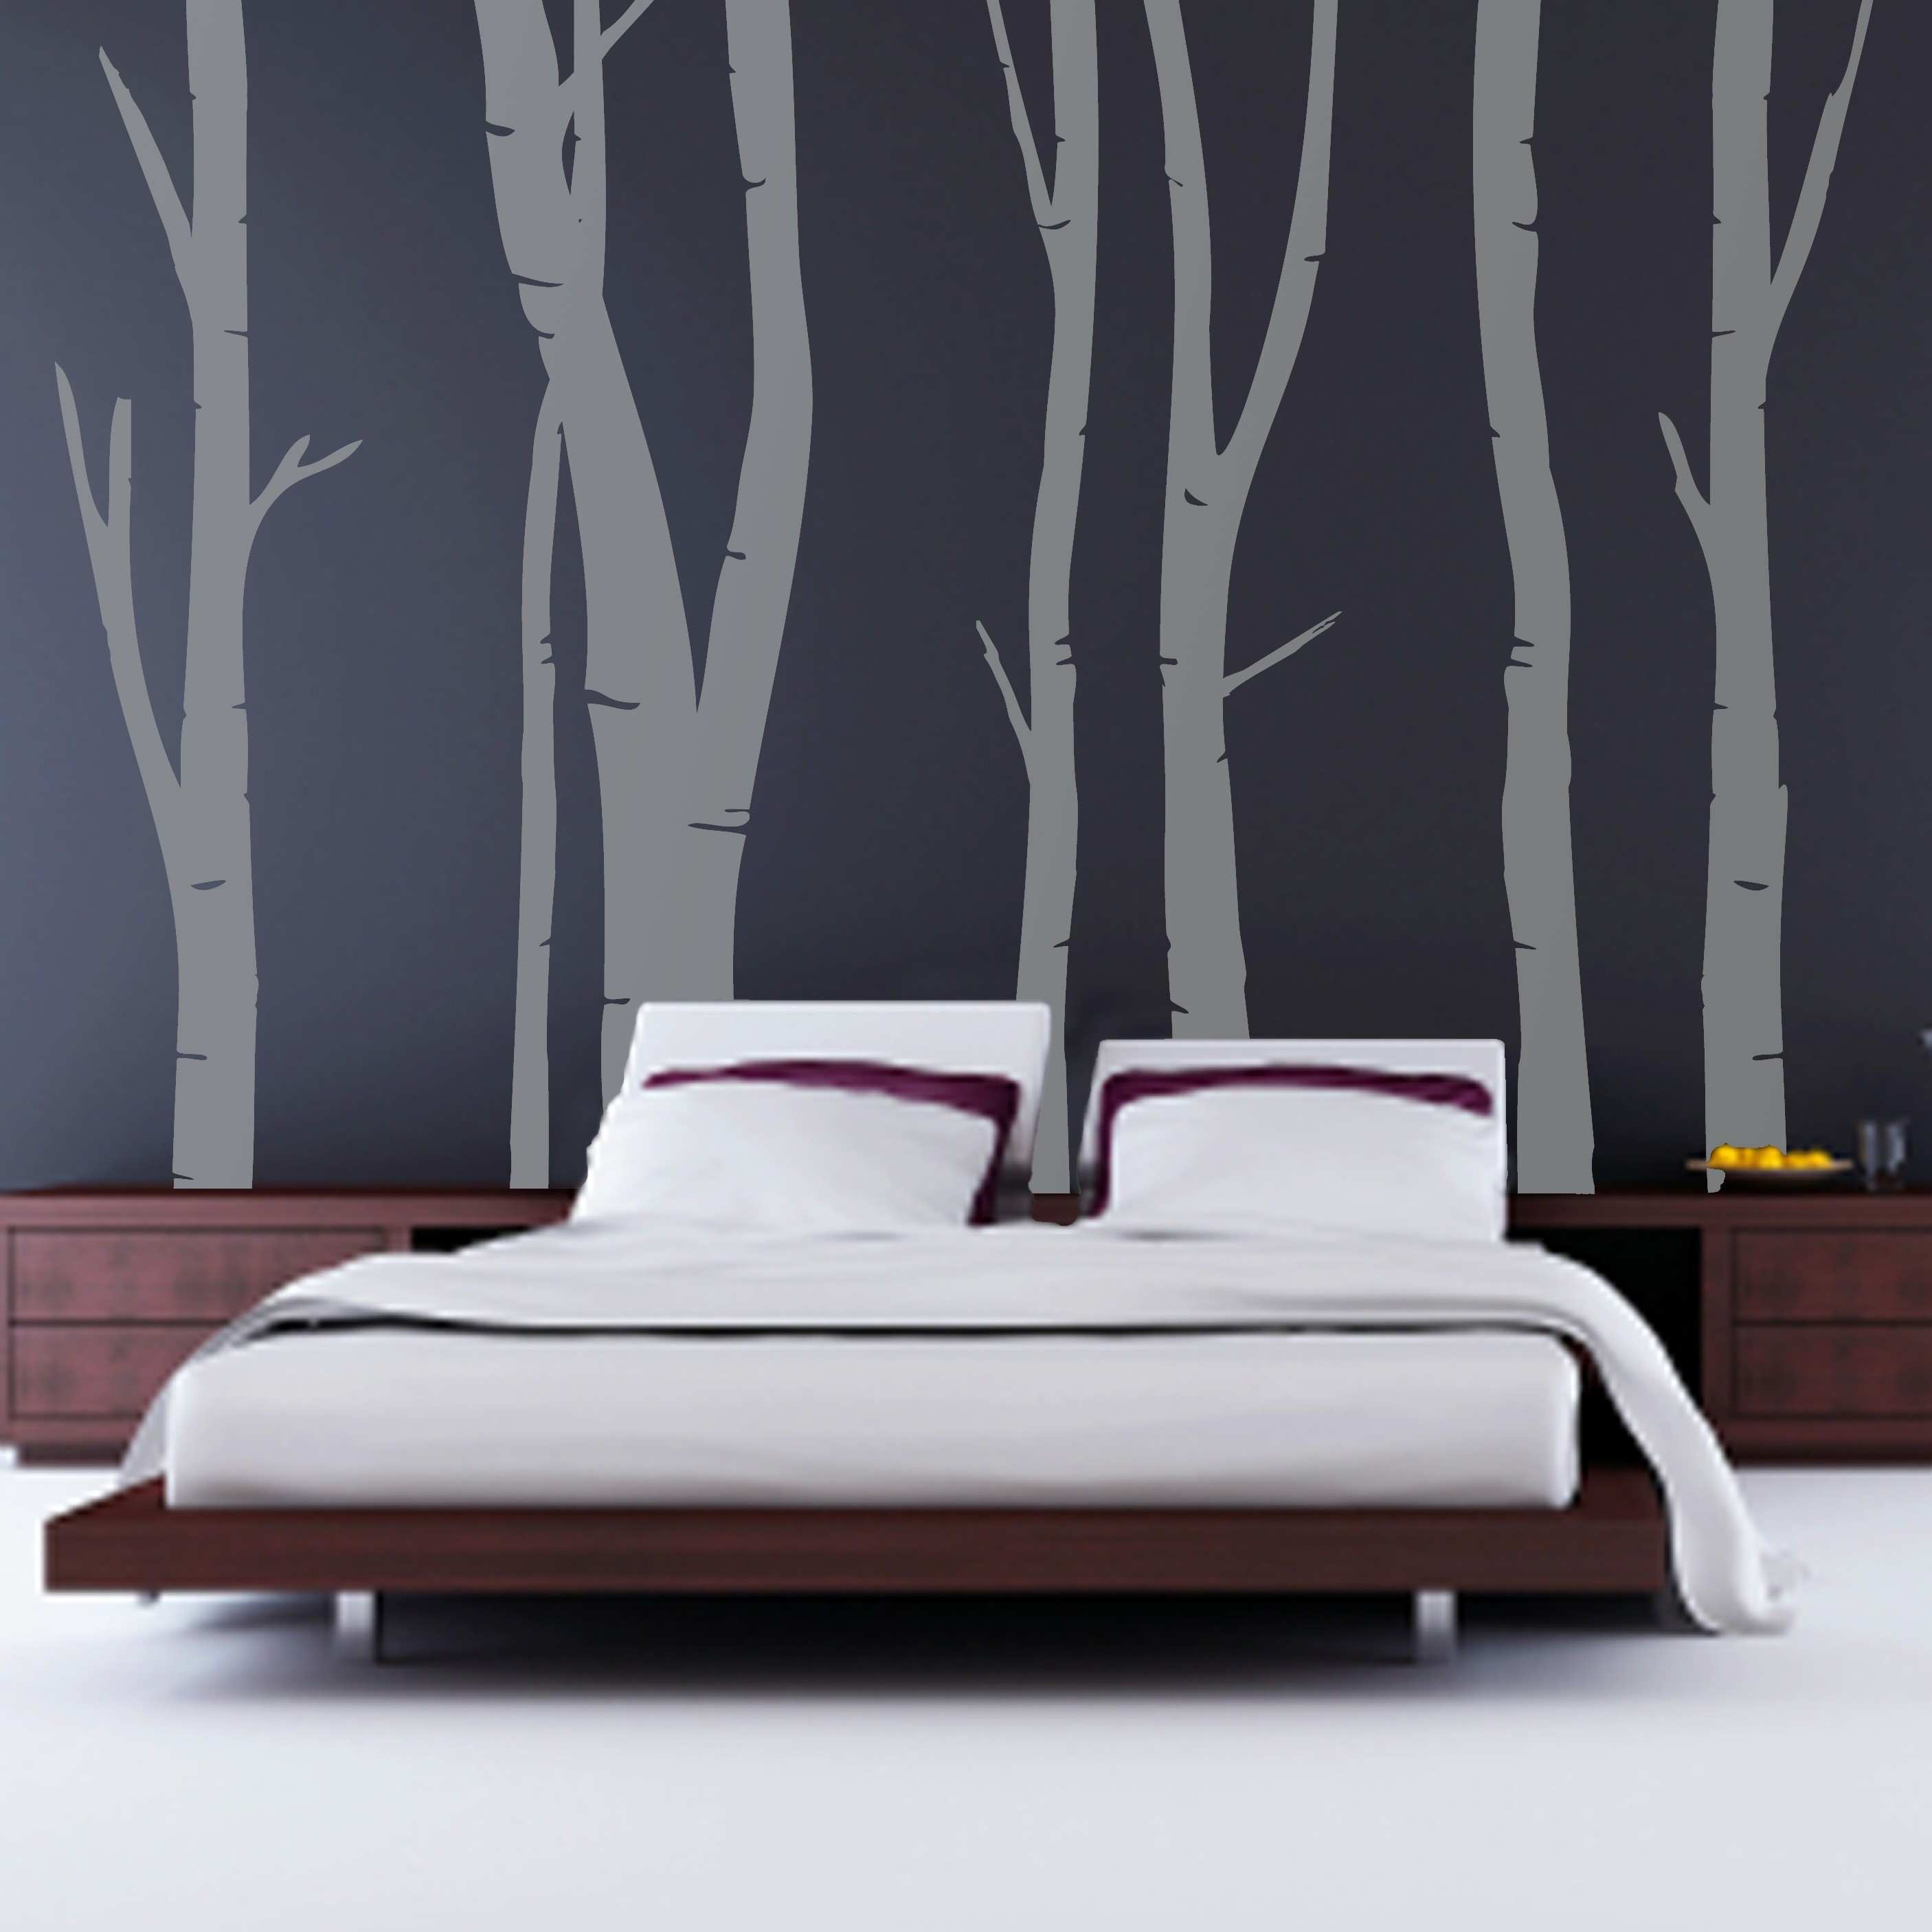 32 Lovely Black and White Wall Decor for Bedroom